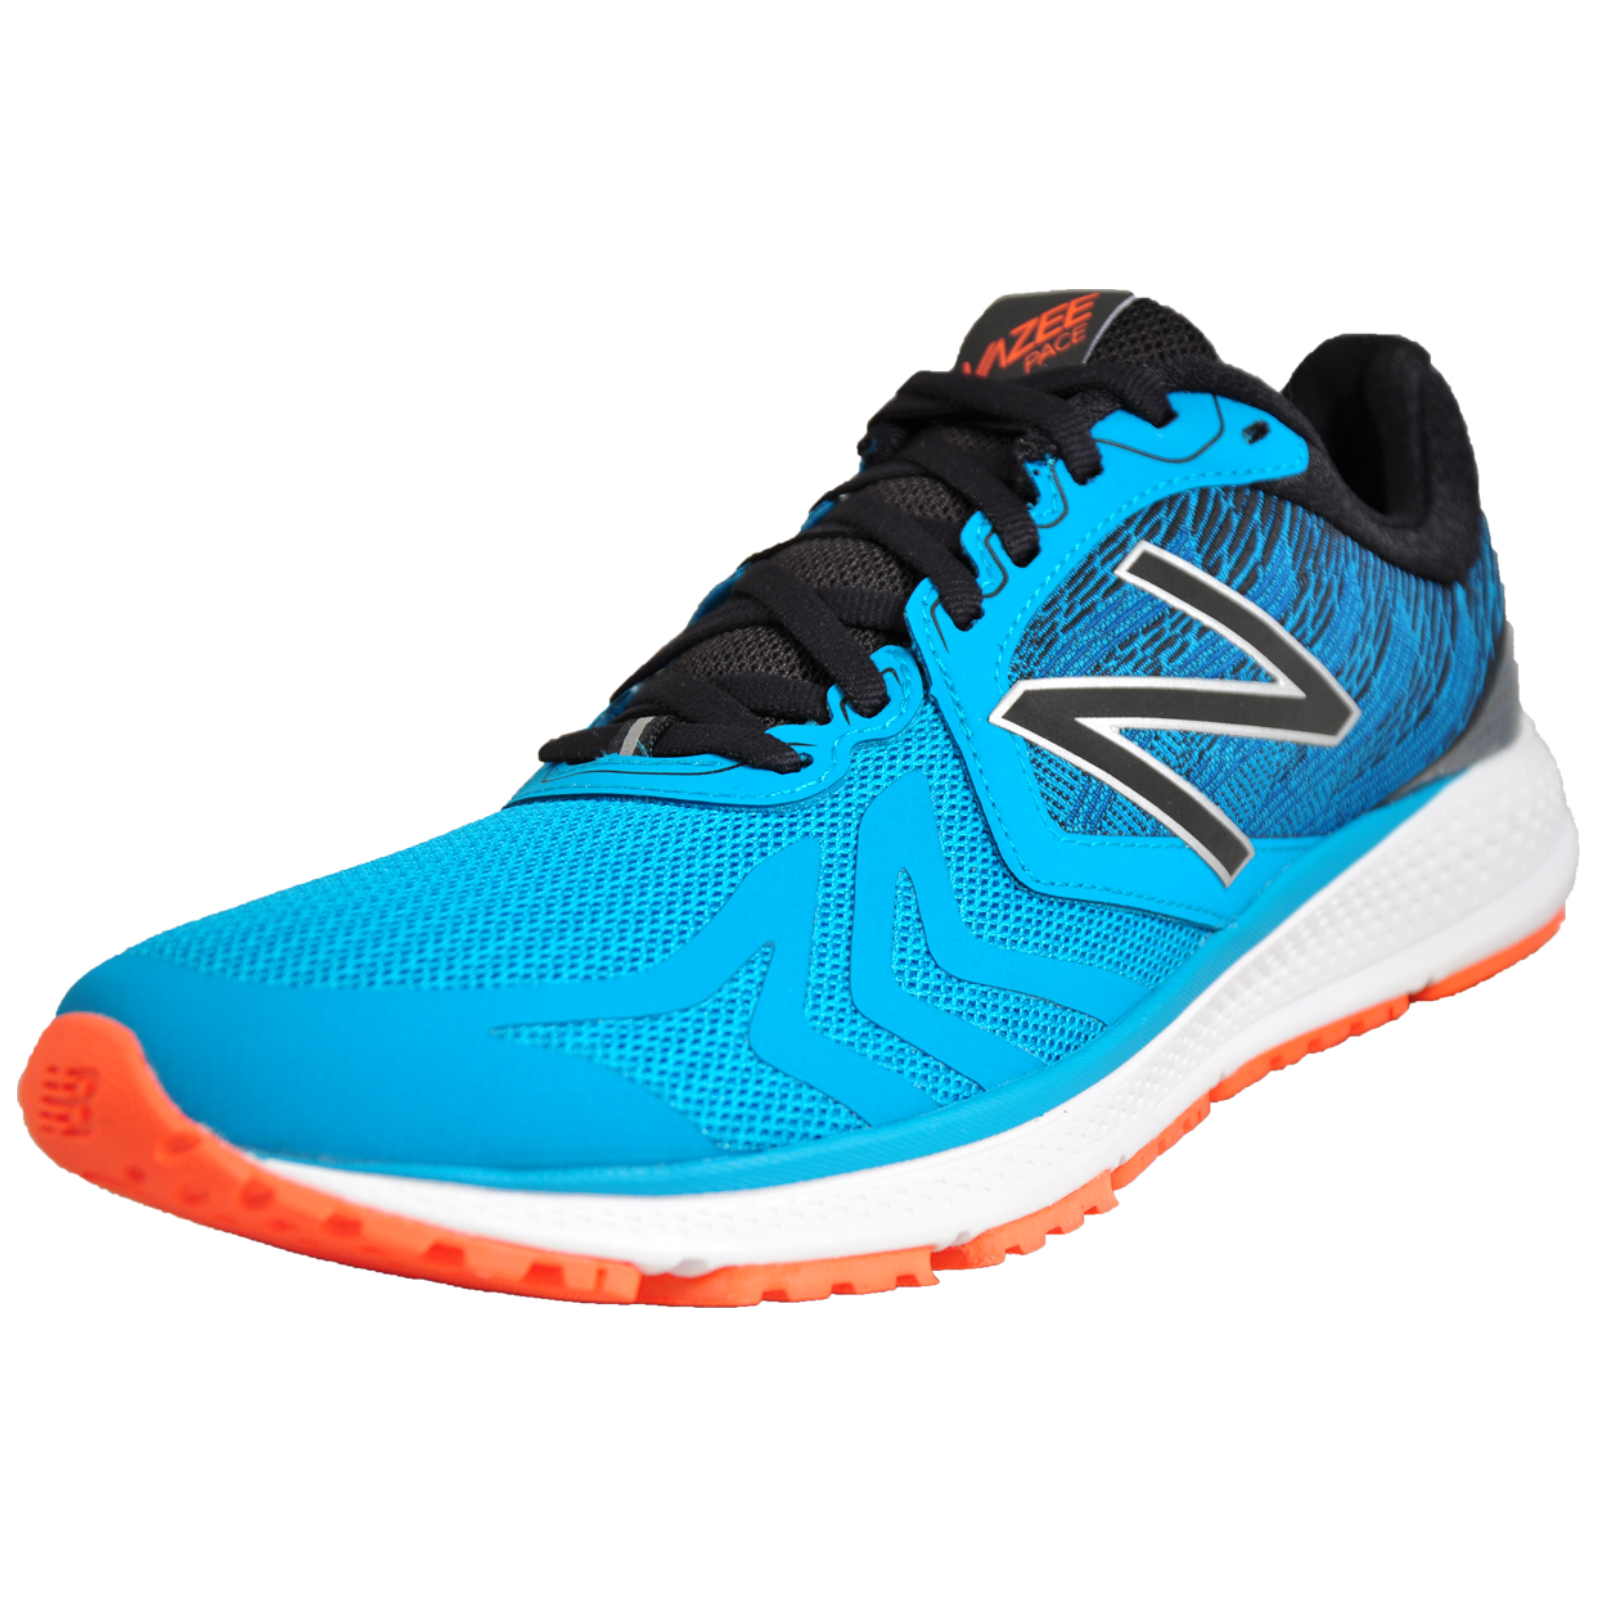 8effa5ce7430e New Balance Vazee Pace V2 Men's Premium Running Shoes Fitness Gym Trainers